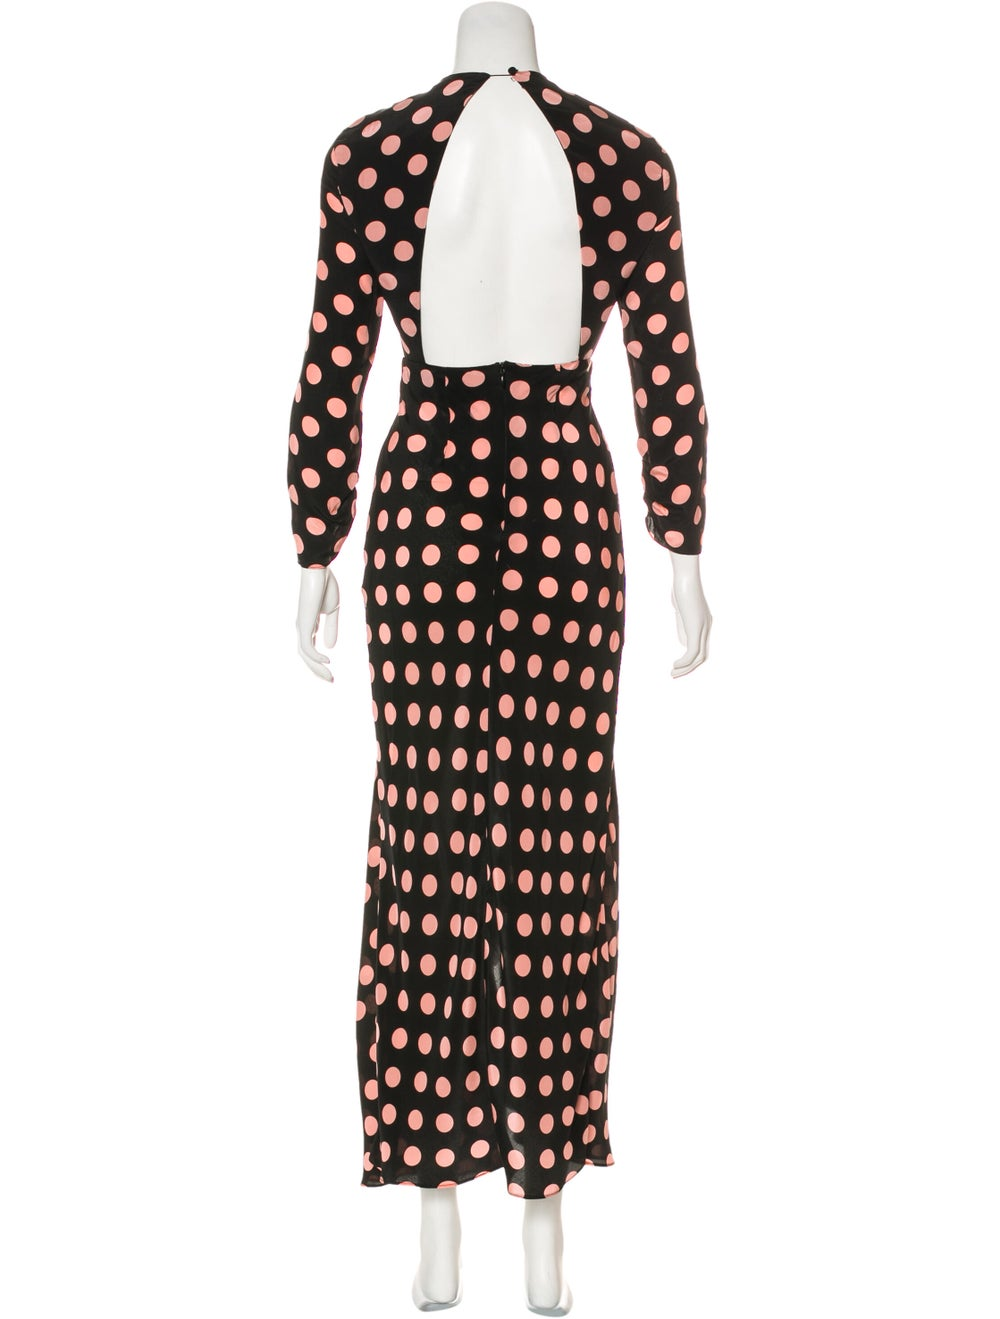 Rixo Silk Polka Dot Dress Black - image 3